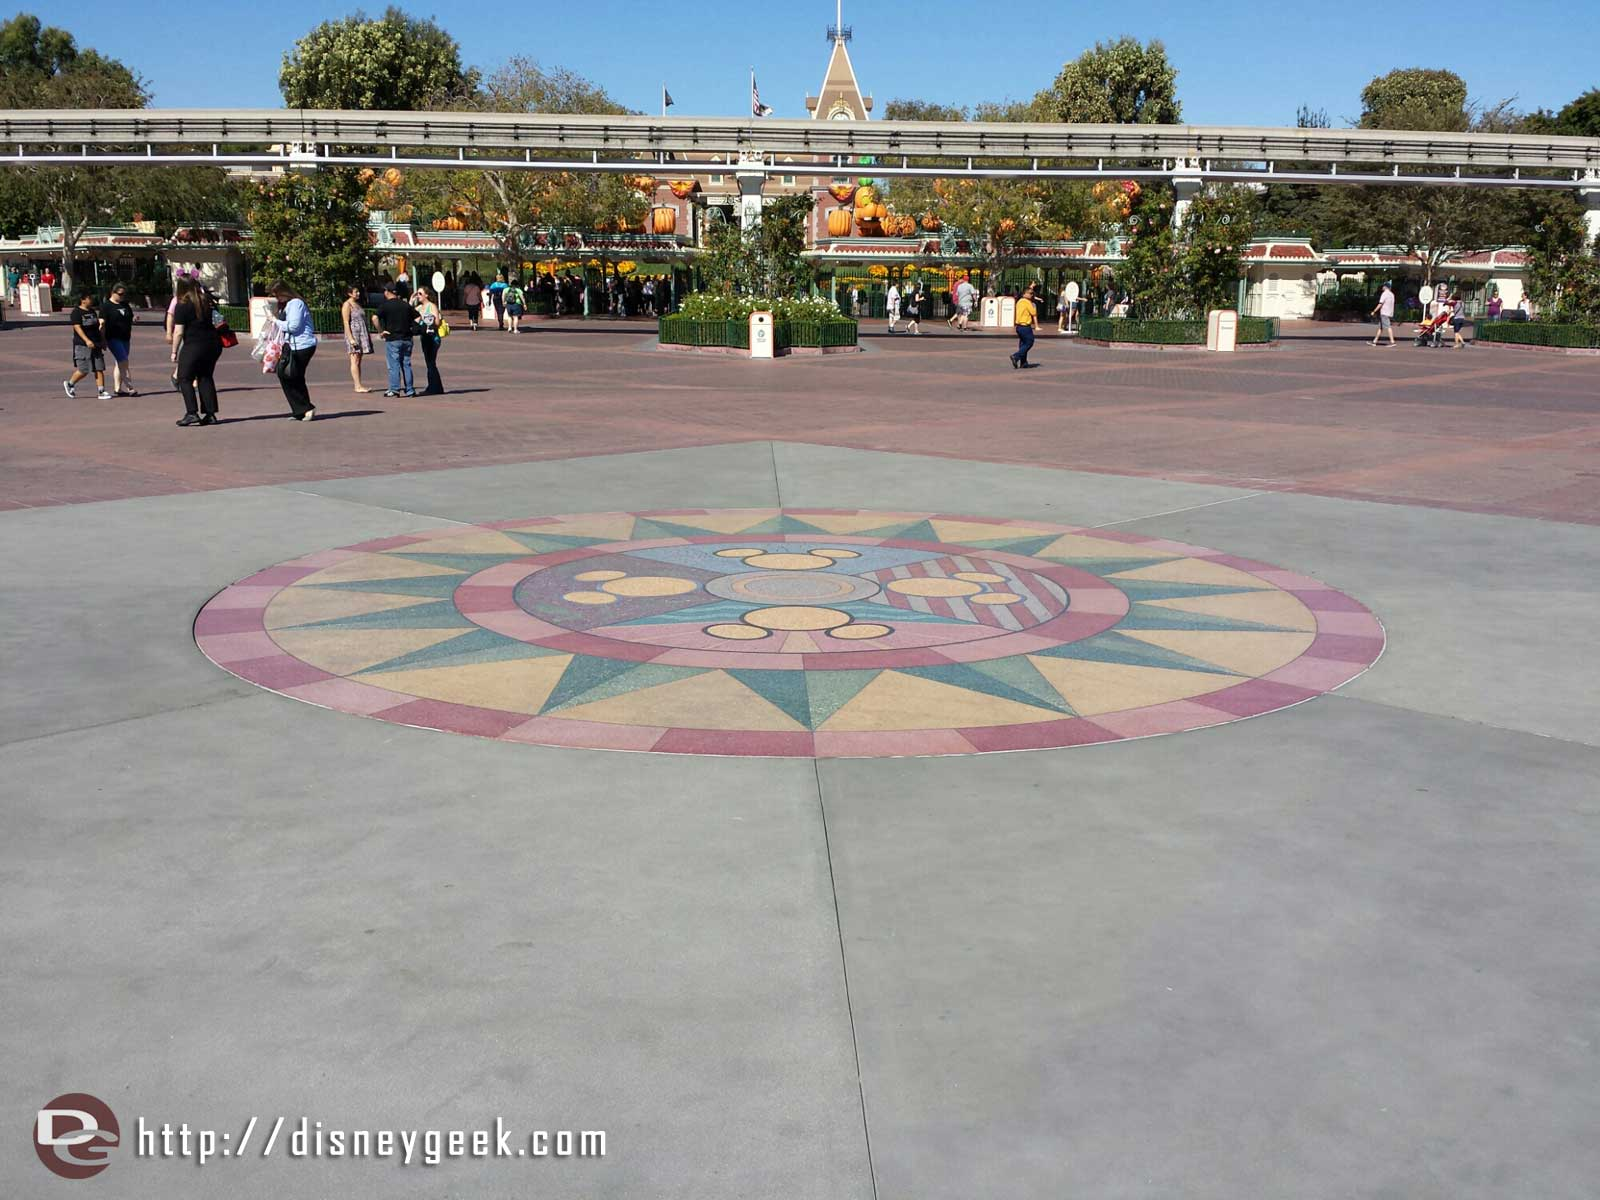 The work on the esplande between the parks has wrapped up.  It features plain concrete around the compass now.